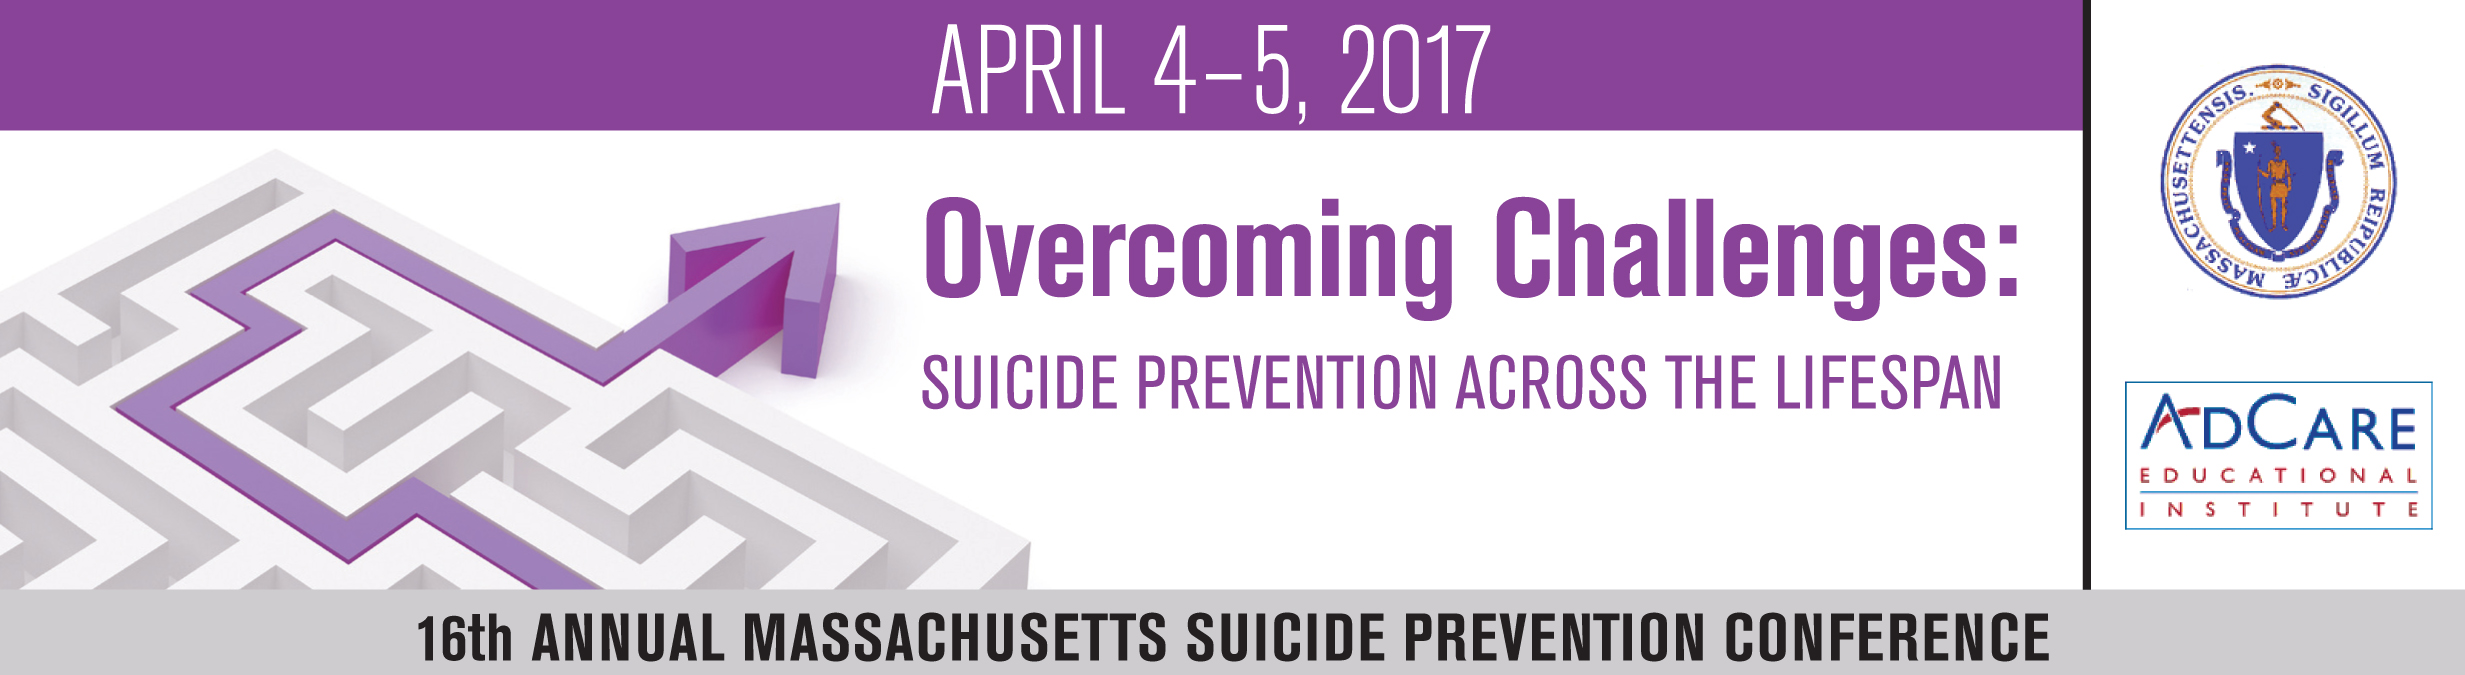 Overcoming Challenges: Suicide Prevention Across the Lifespan